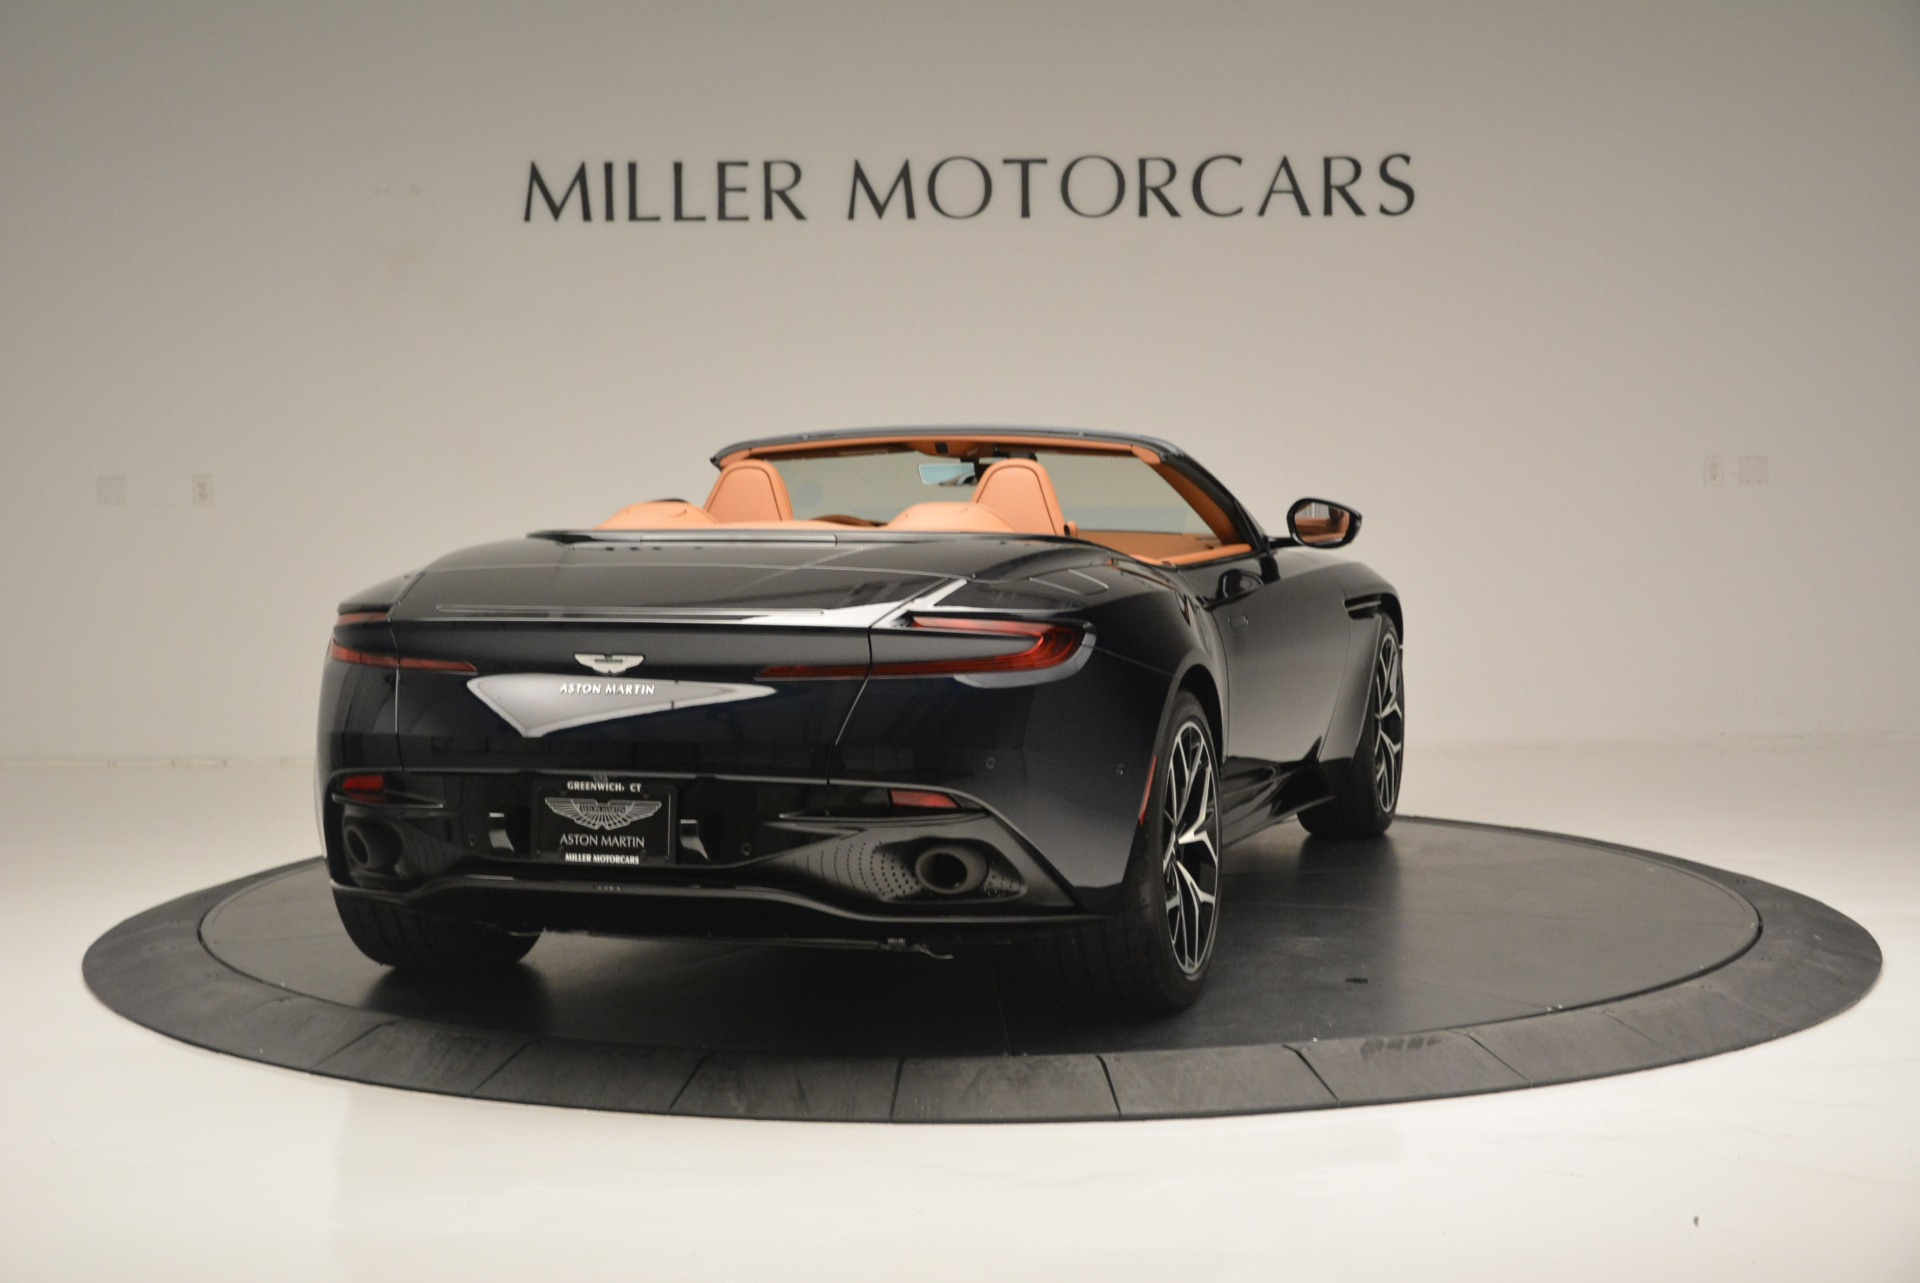 New 2019 Aston Martin DB11 Volante Volante For Sale In Westport, CT 2450_p7